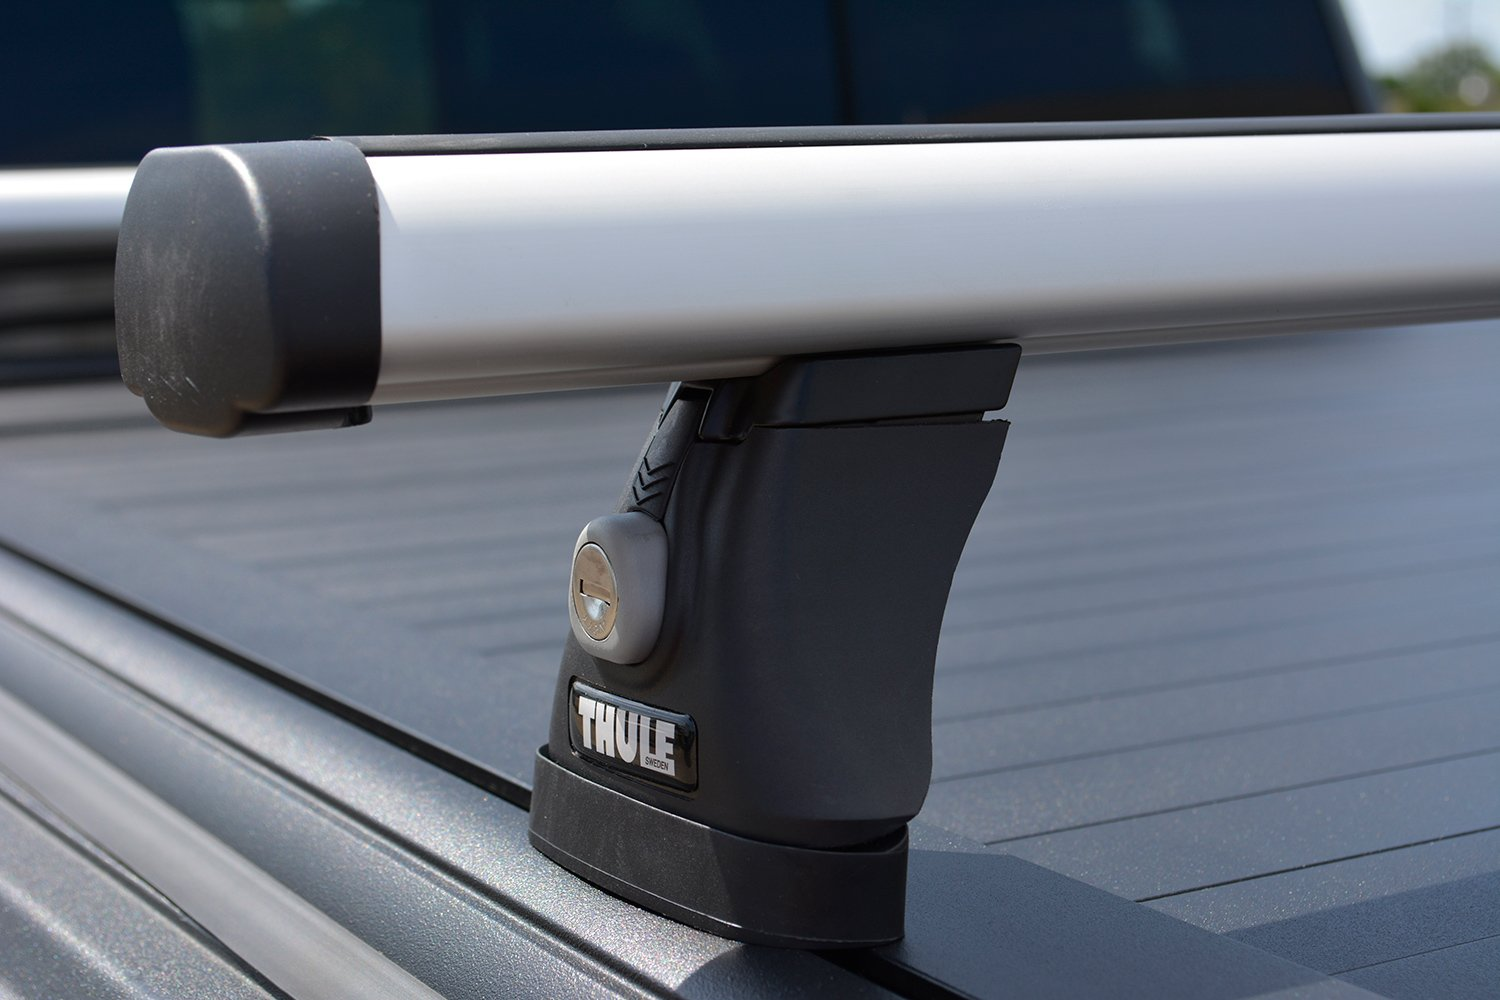 Toyota Pickup Parts >> Pace-Edwards Multi-Sport Rack System by Thule - For ...